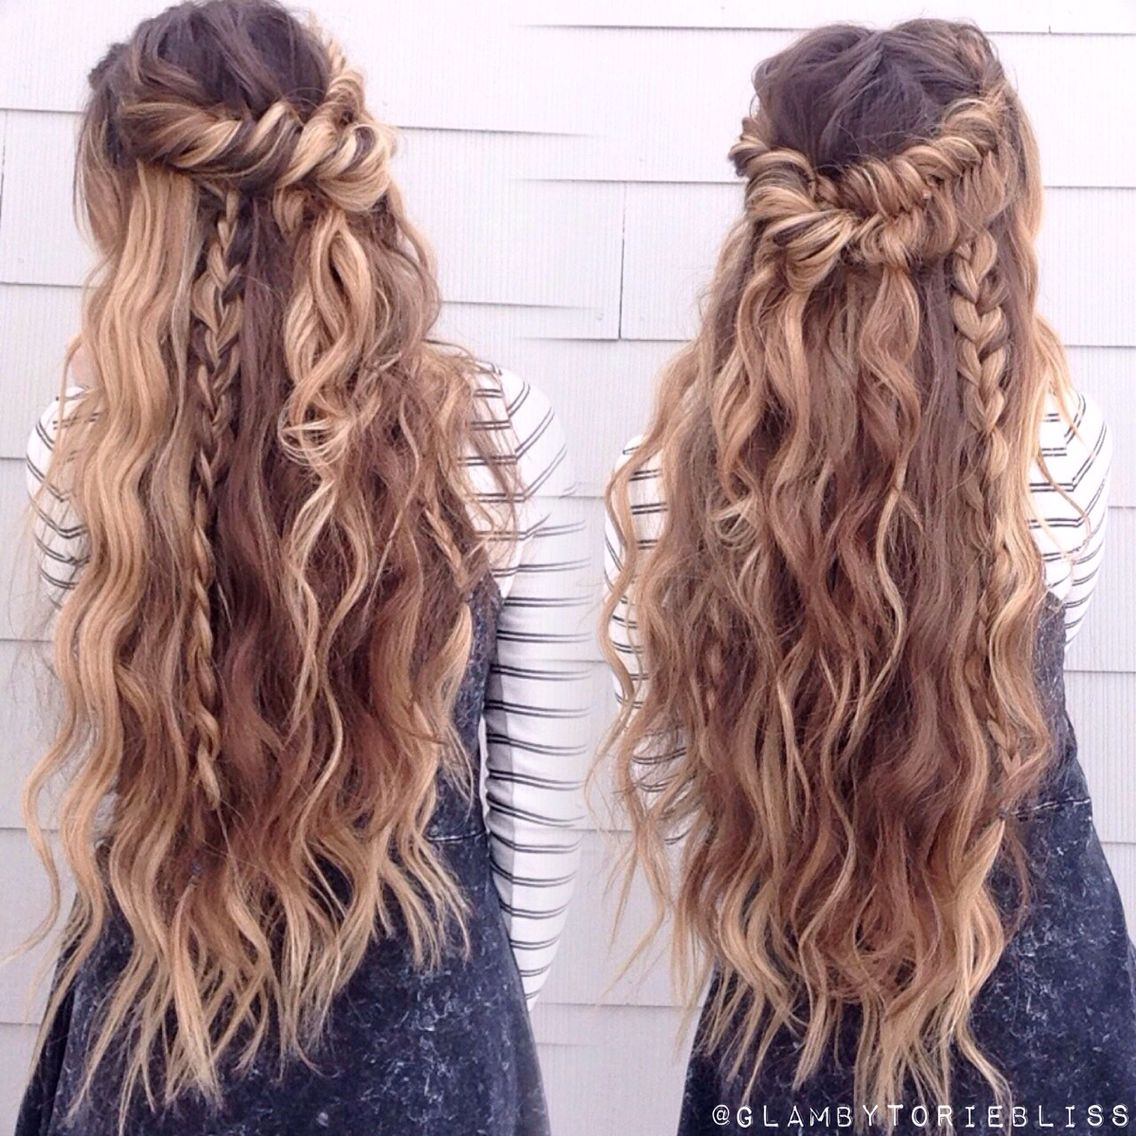 Wedding Hairstyles Boho: Boho Mix Of Textured Braids + Beachy Waves